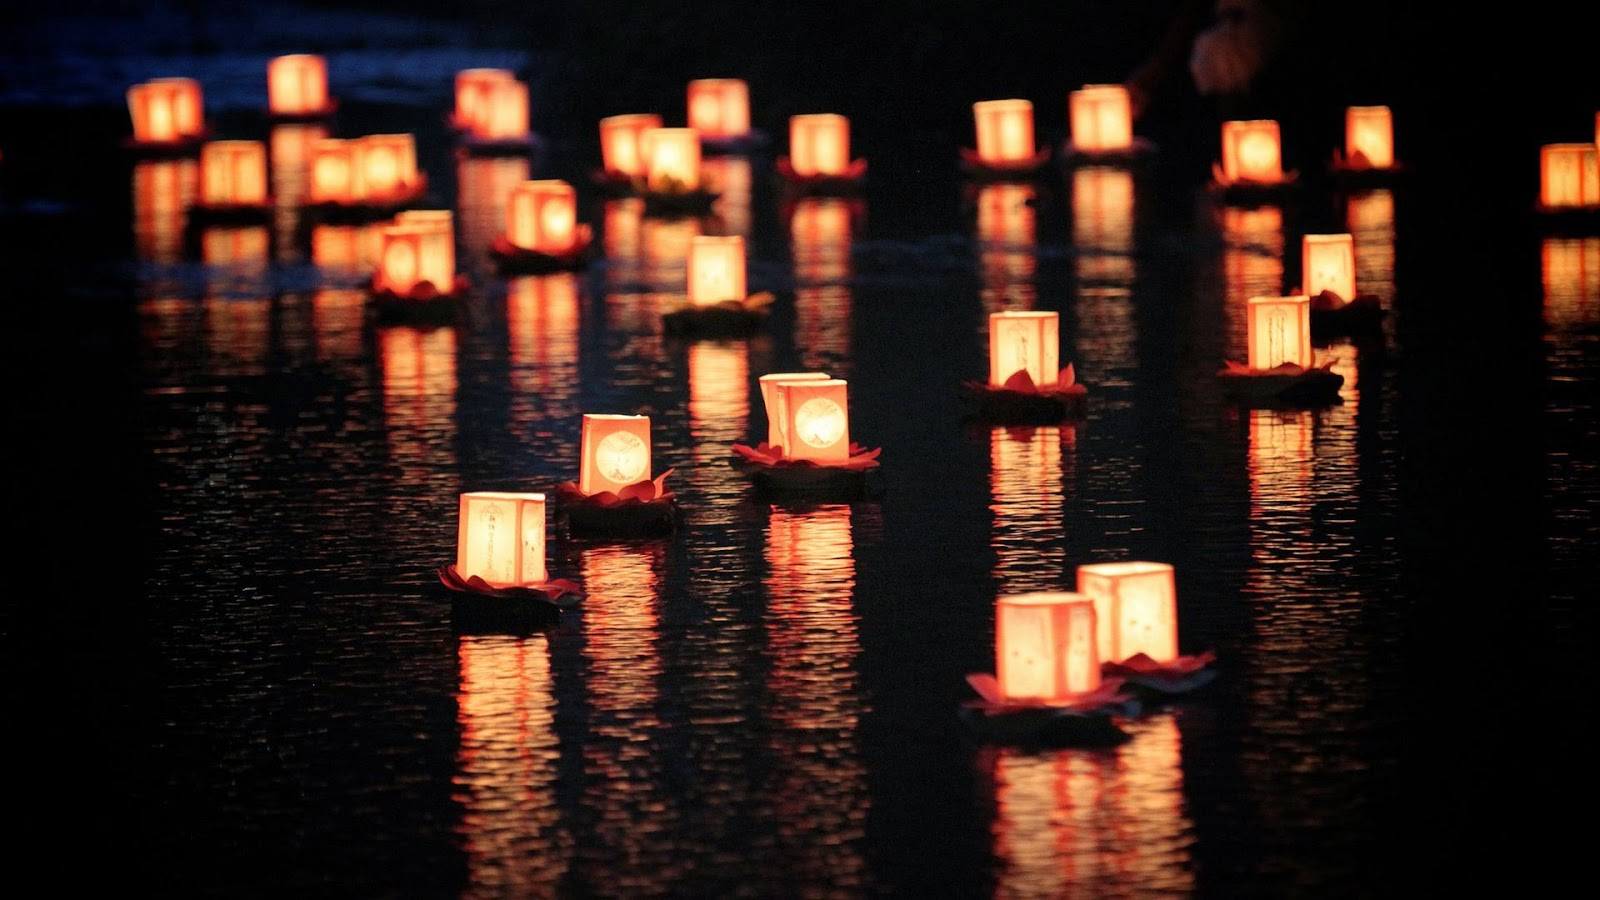 Candles Hd Wallpapers Candle Backgrounds And Images: Colorado Child Fatality Prevention System: September 10th